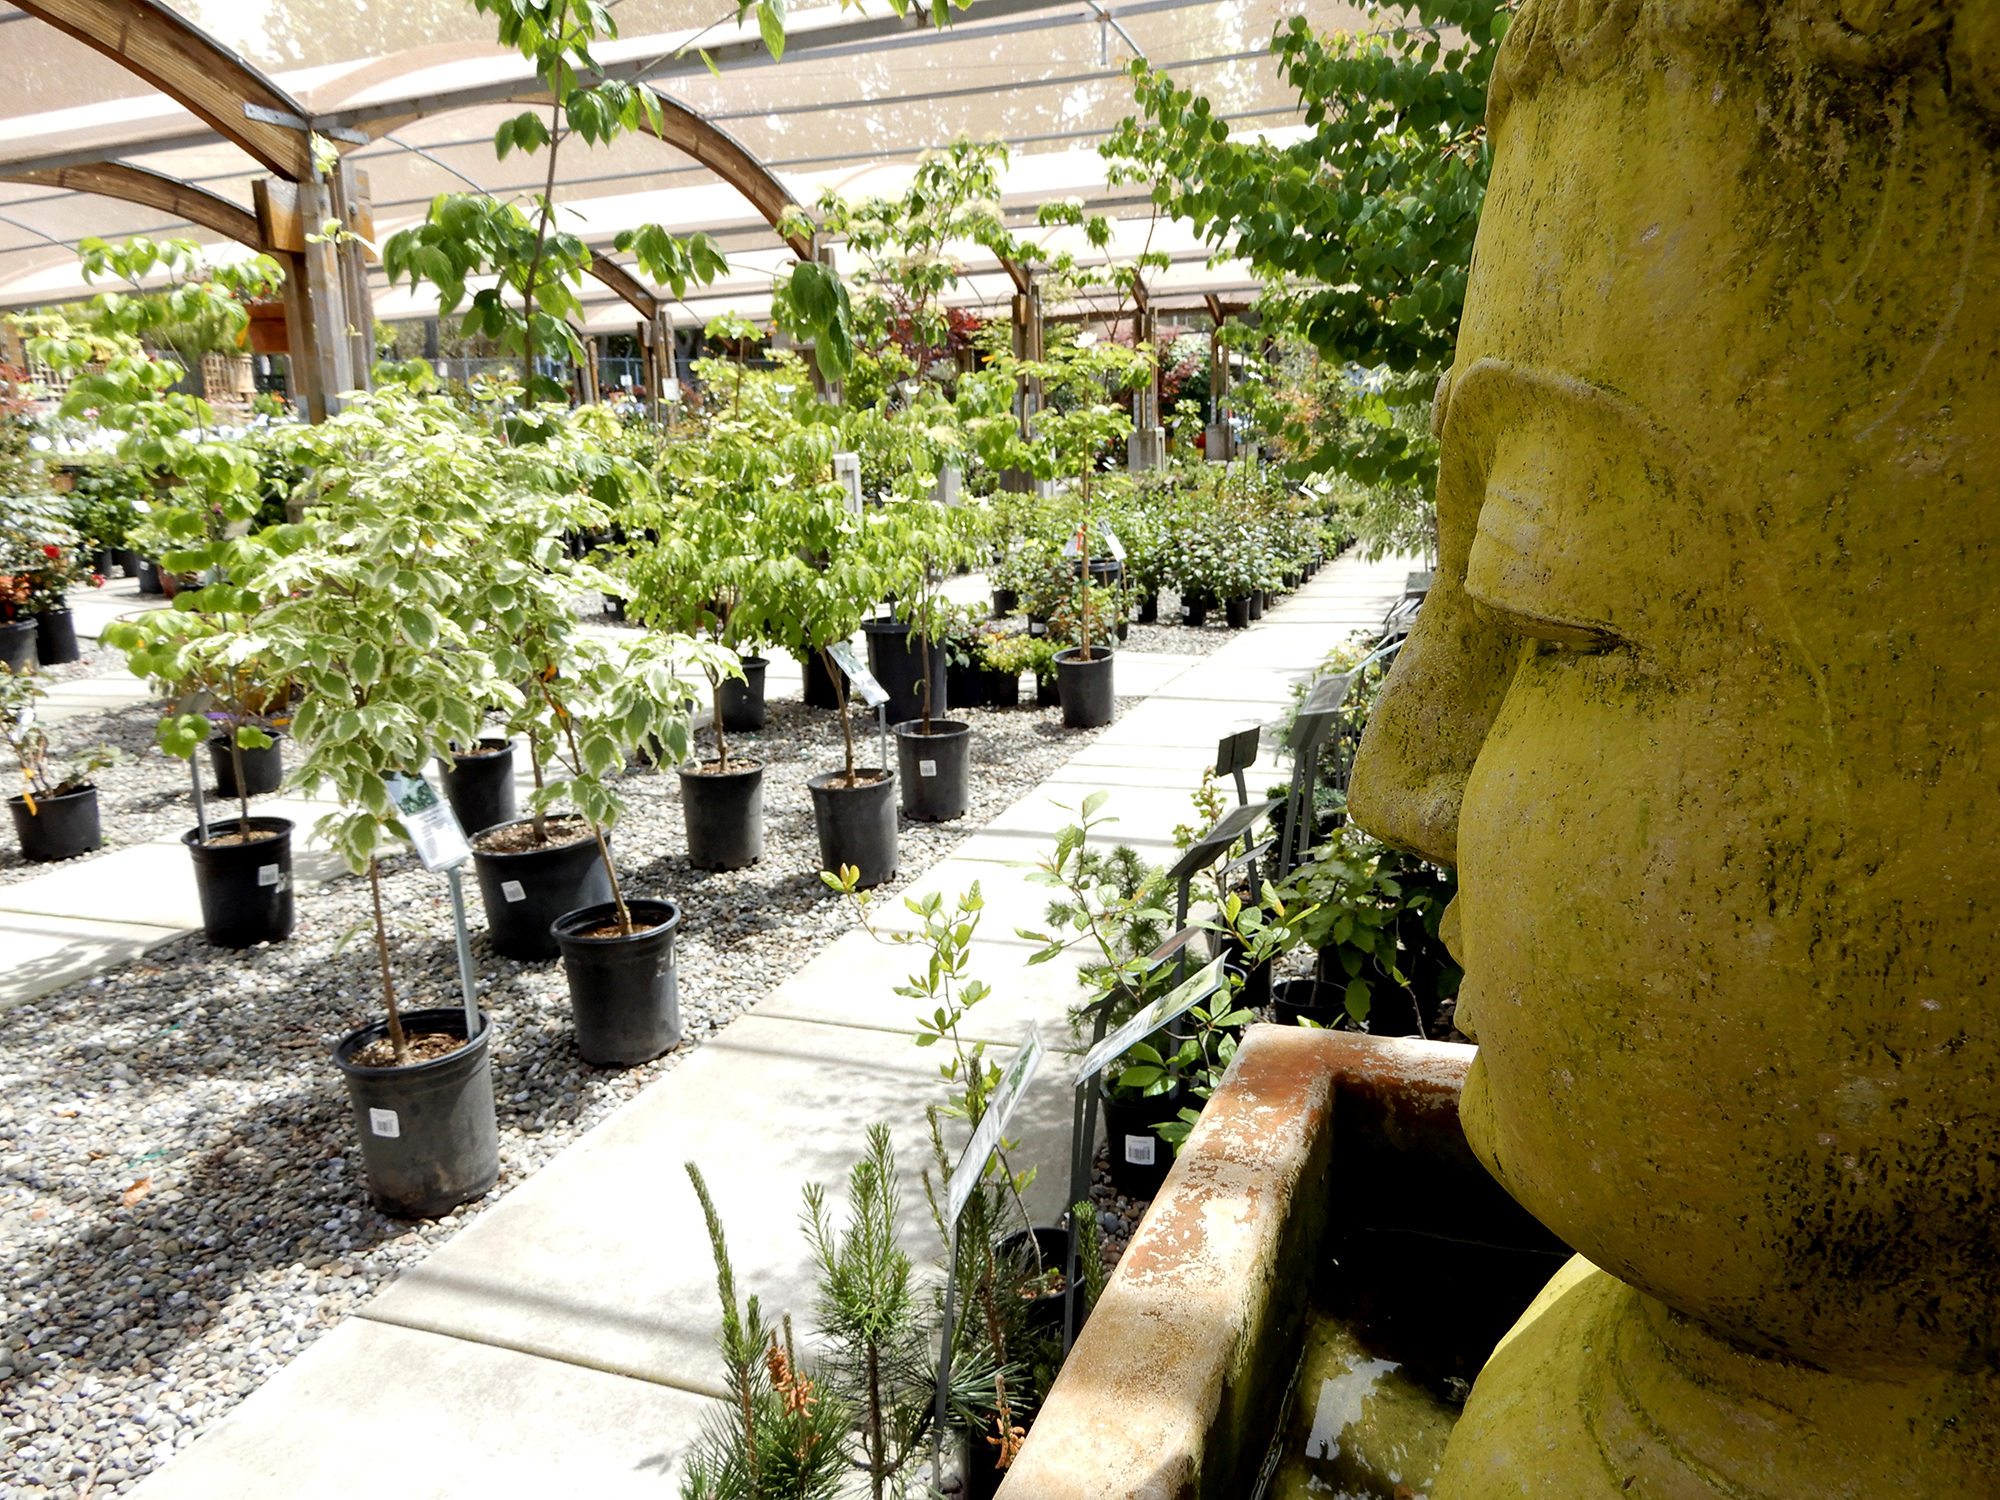 buddha statue in nursery - Photo by Helen Krayenhoff